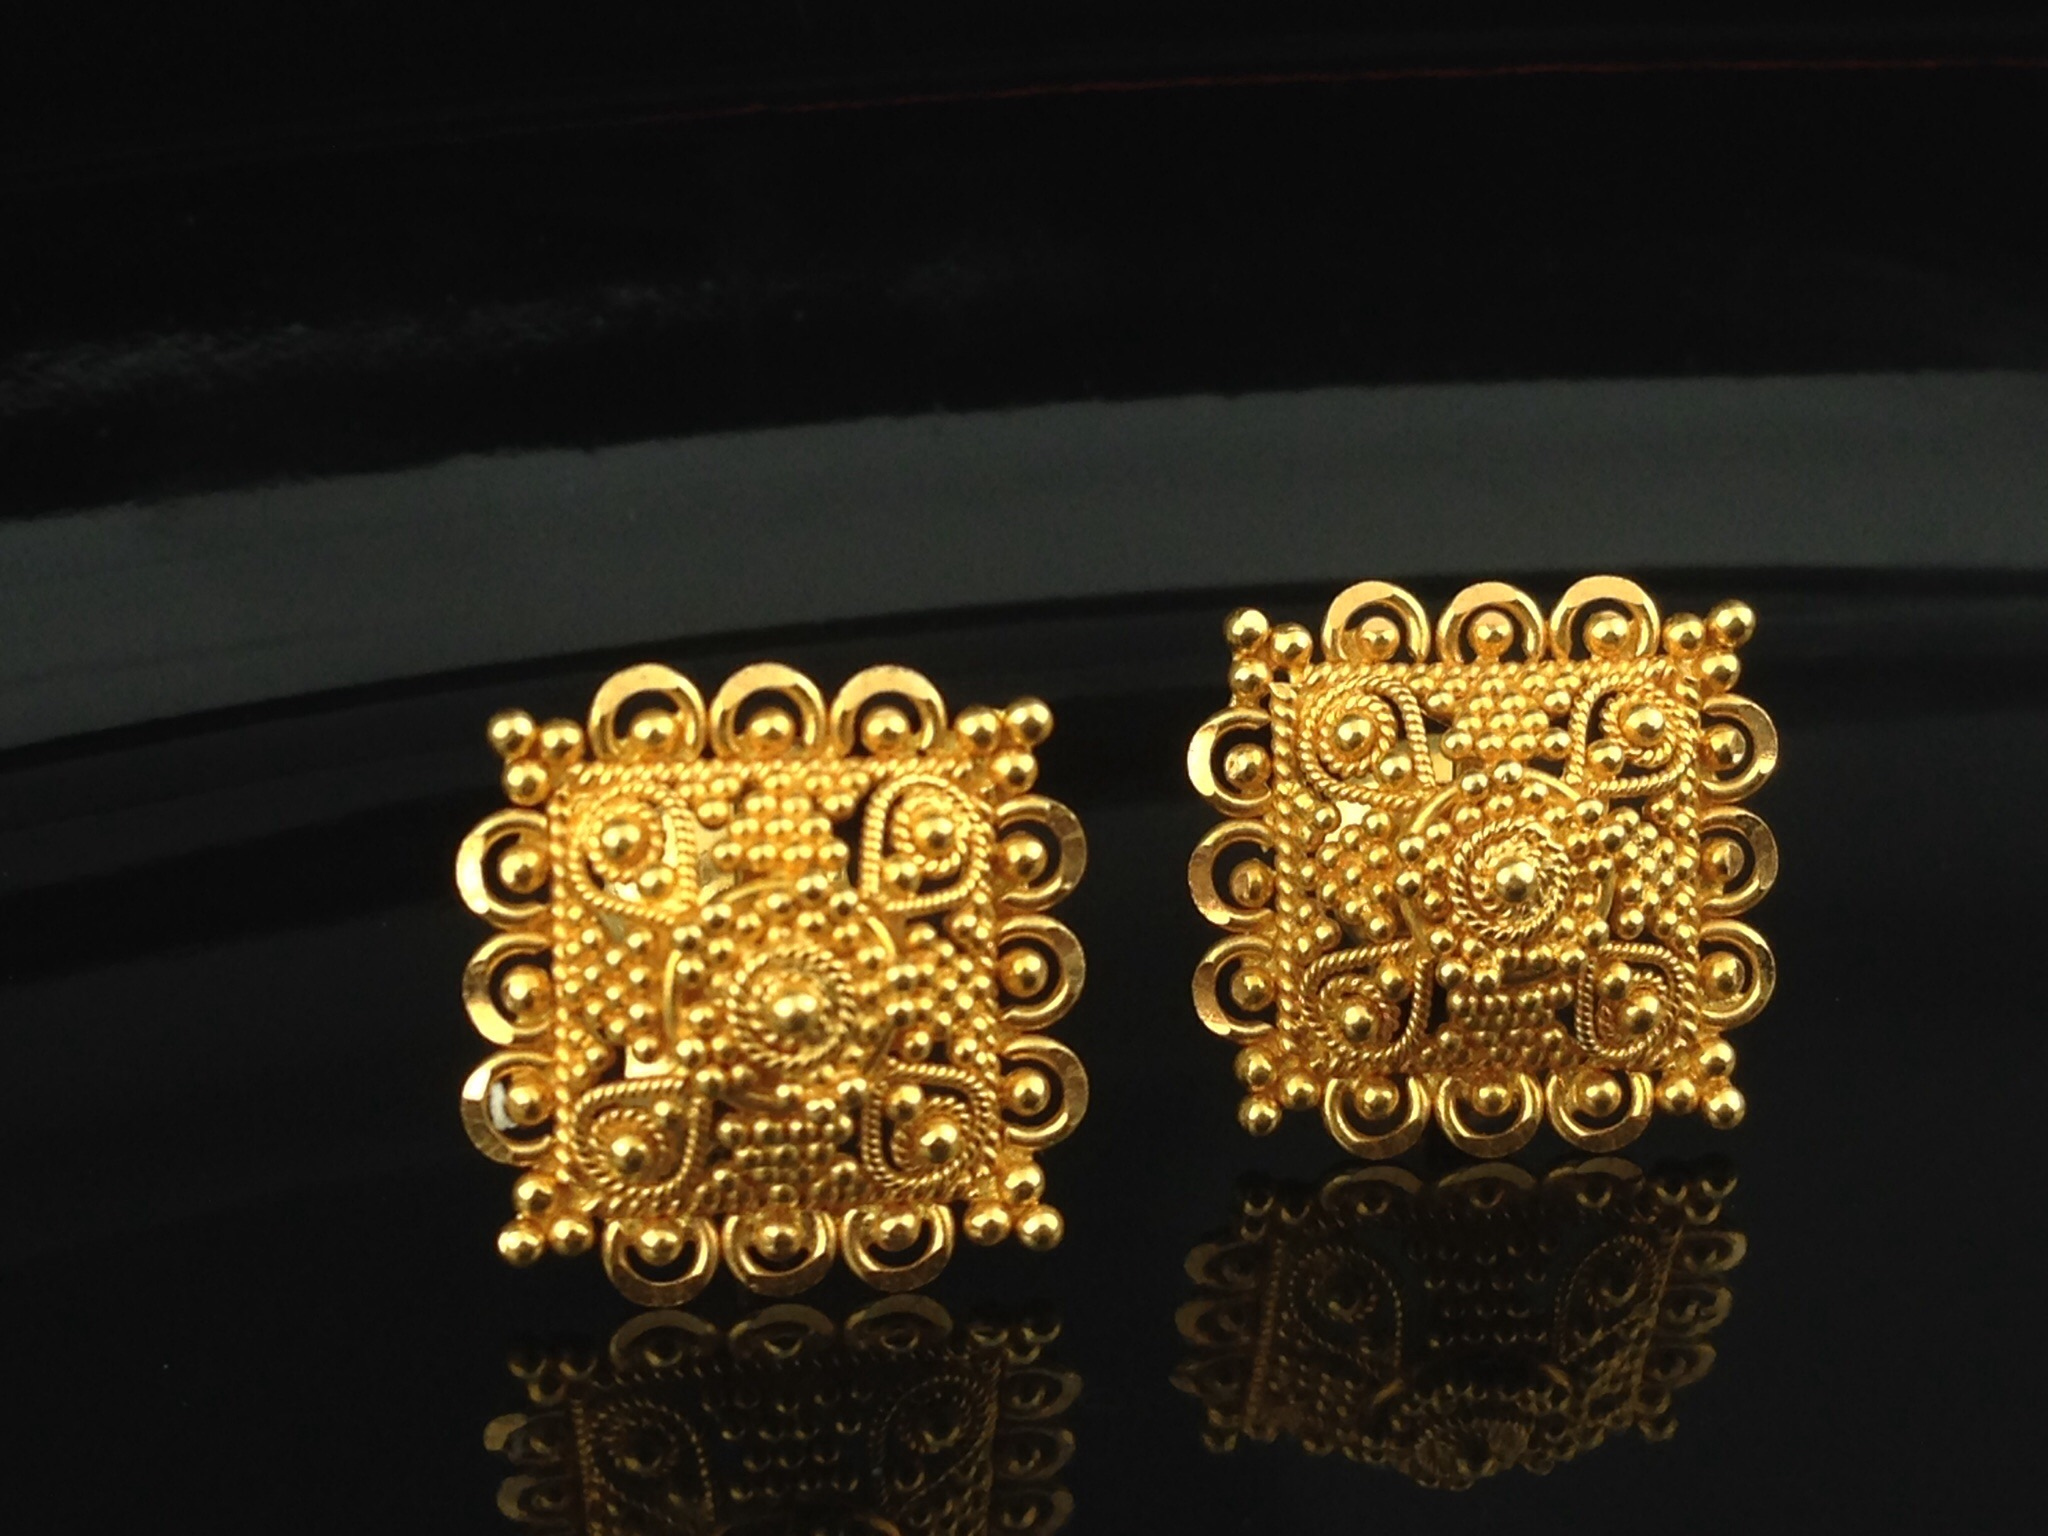 22k Gold Stud Earrings 4 5 Grams Indian Kundan Ic And Jewelry In Atlanta Online